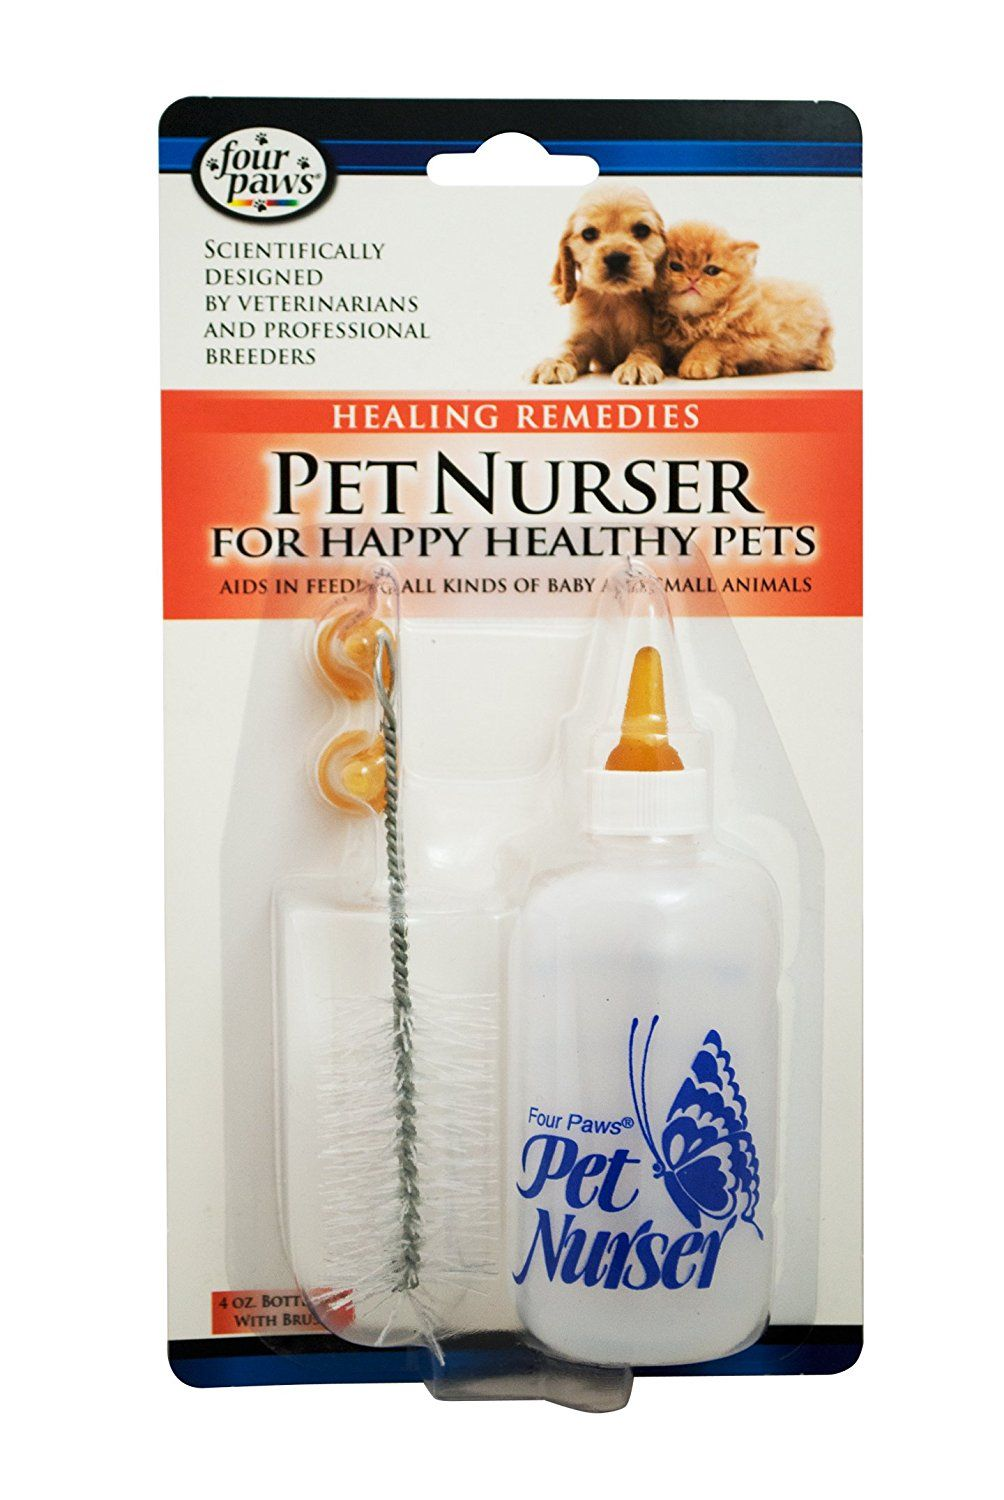 Four Paws Cat Nursing Bottle Kit Special Product Just For You See It Now This Is An Amazon Affiliate Link I May Earn Comm Cat Health Kitten Health Pets